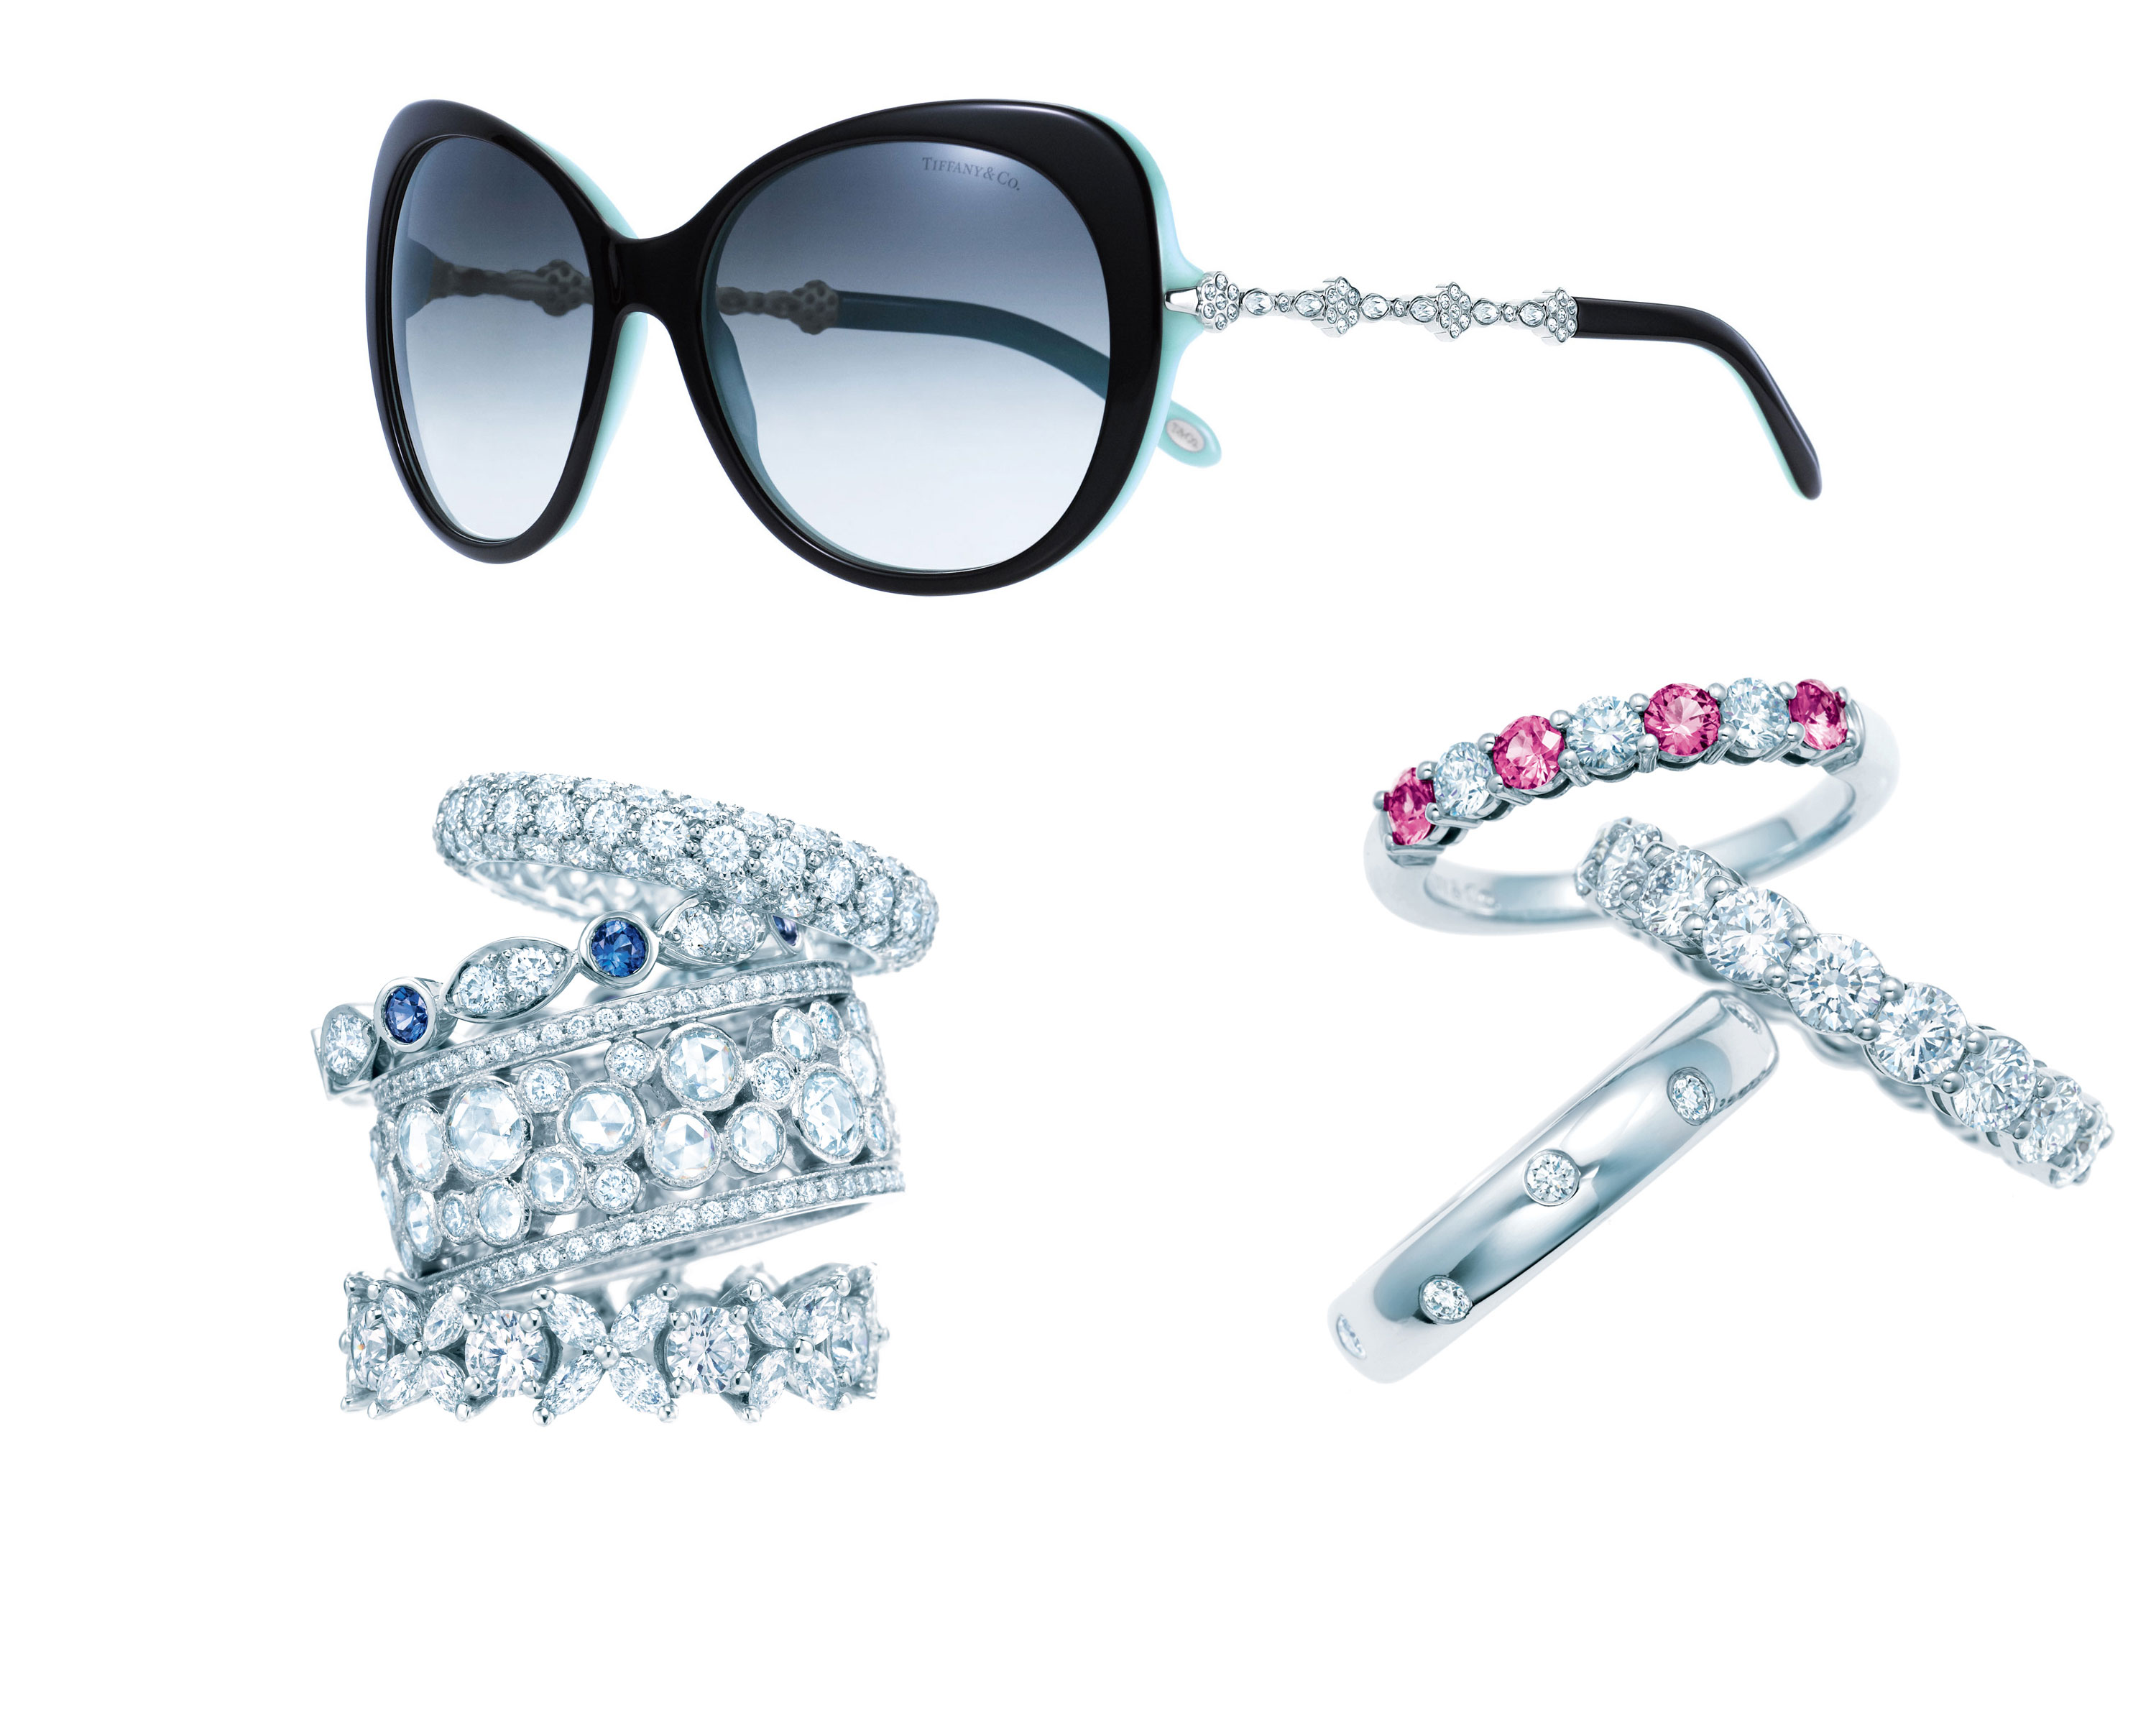 Tiffany & Co. Celebrates Mother's Day with Sparkling Gifts